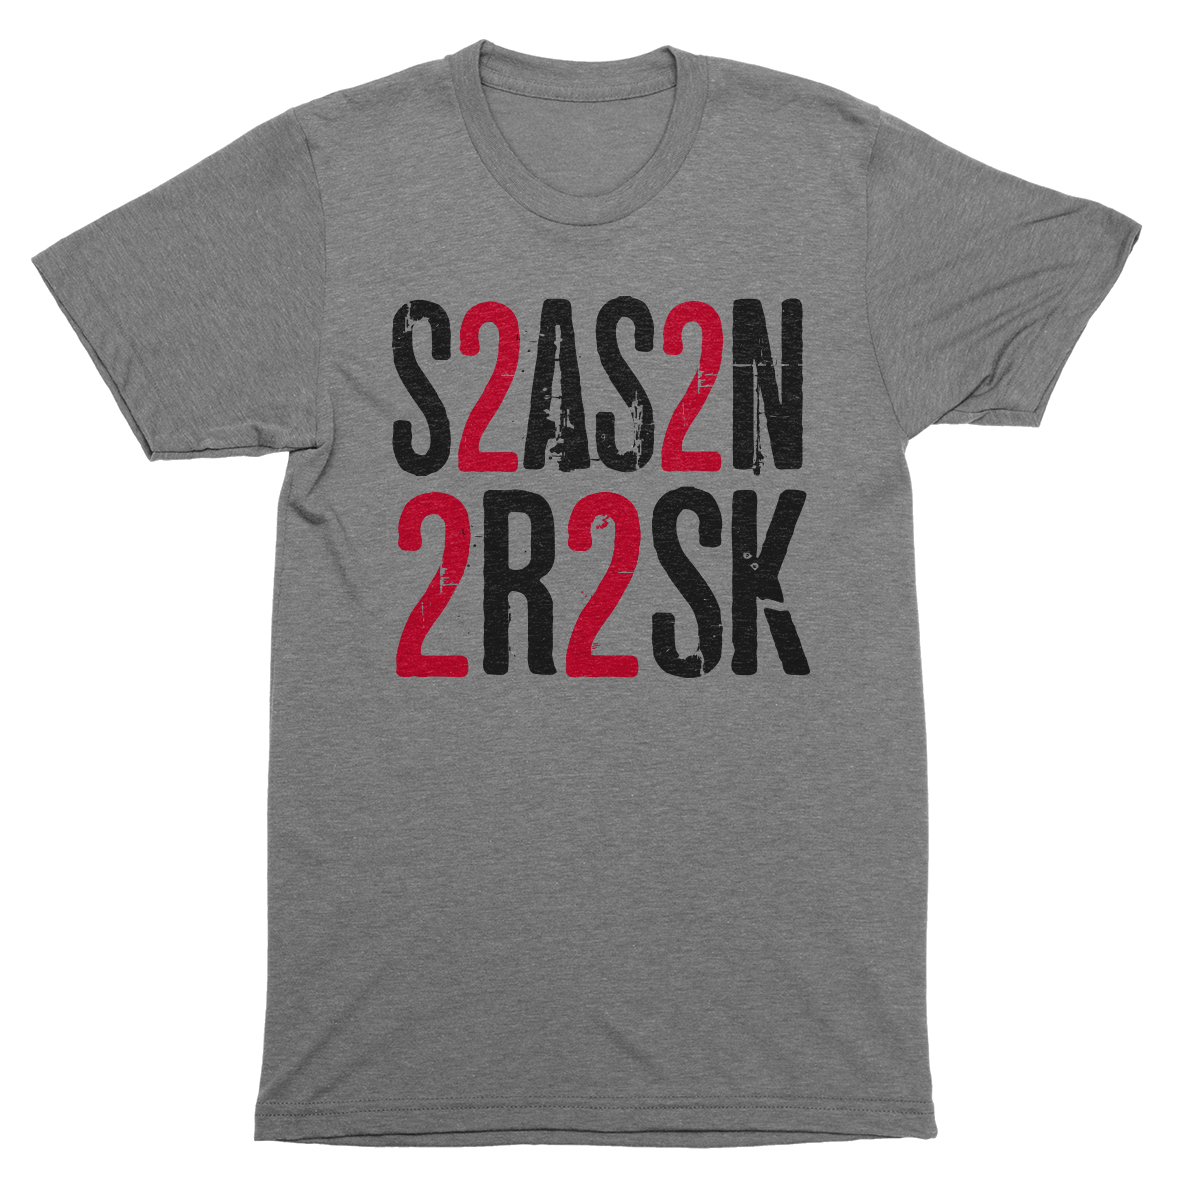 Text T-shirt - Season To Risk